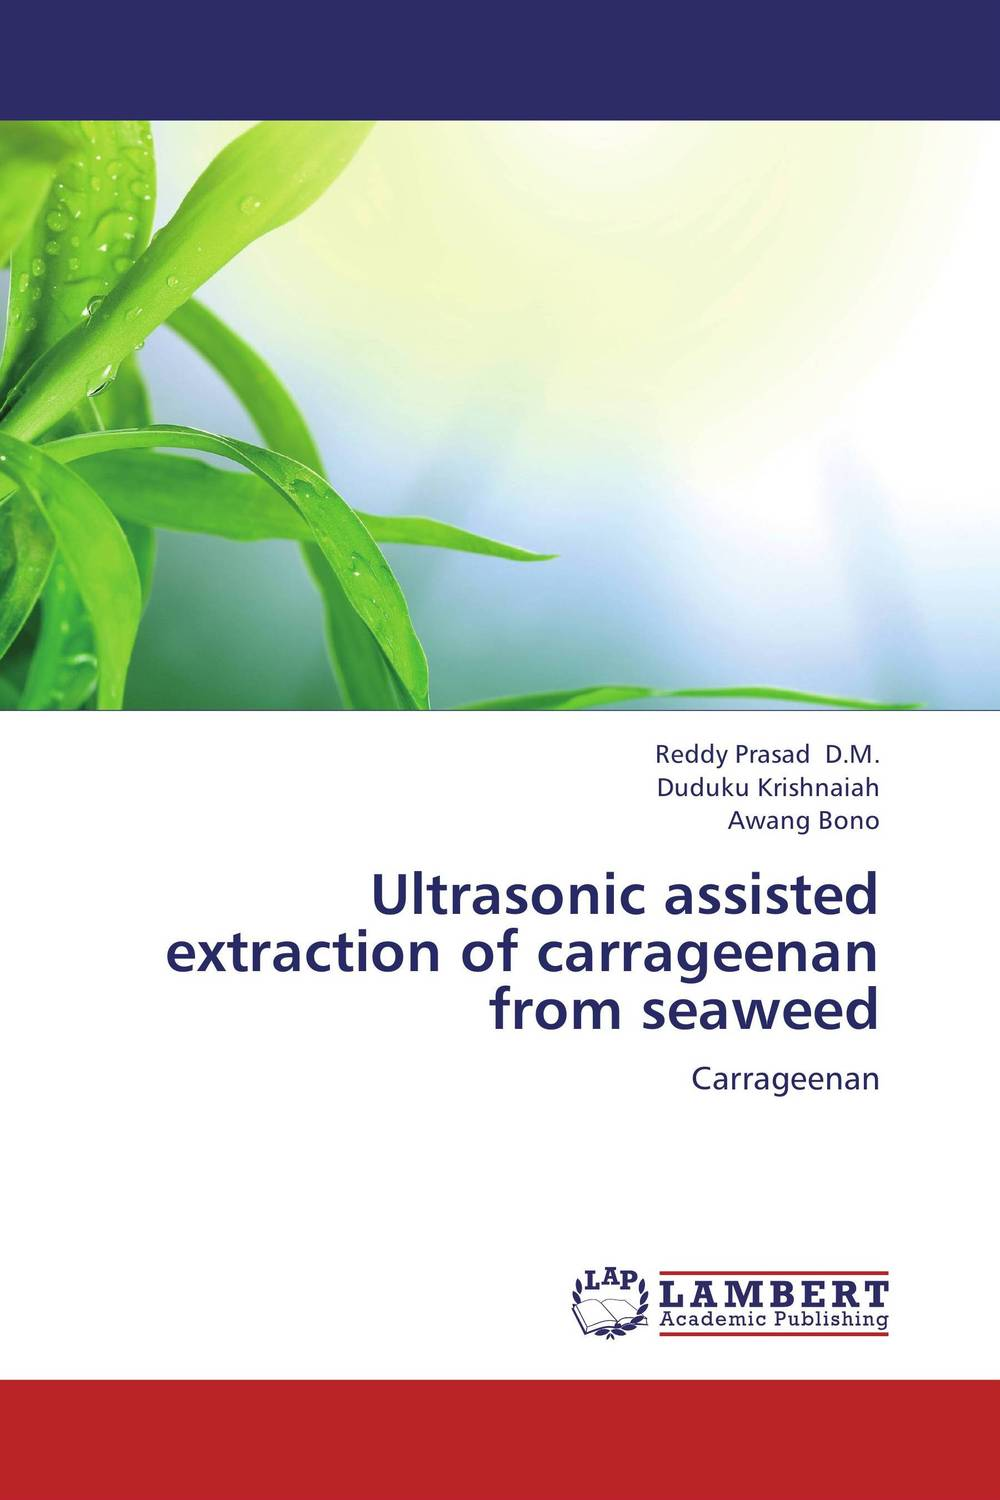 Ultrasonic assisted extraction of carrageenan from seaweed user preference extraction from brain signals